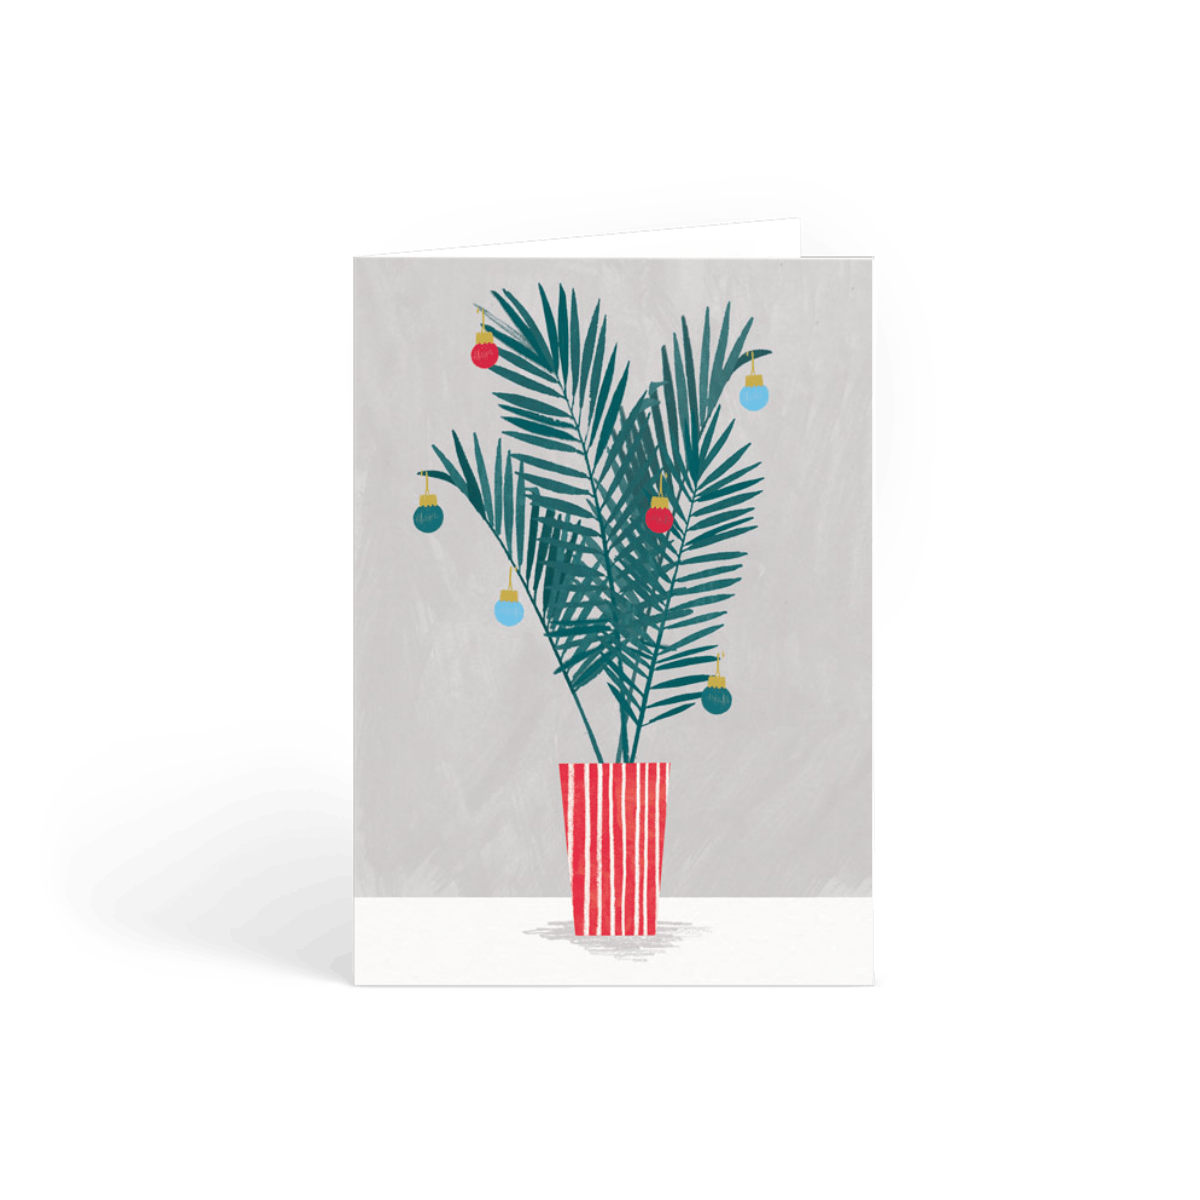 Https%3a%2f%2fwww.papier.com%2fproduct image%2f90878%2f2%2fchristmas palm 22736 front 1570613998.png?ixlib=rb 1.1